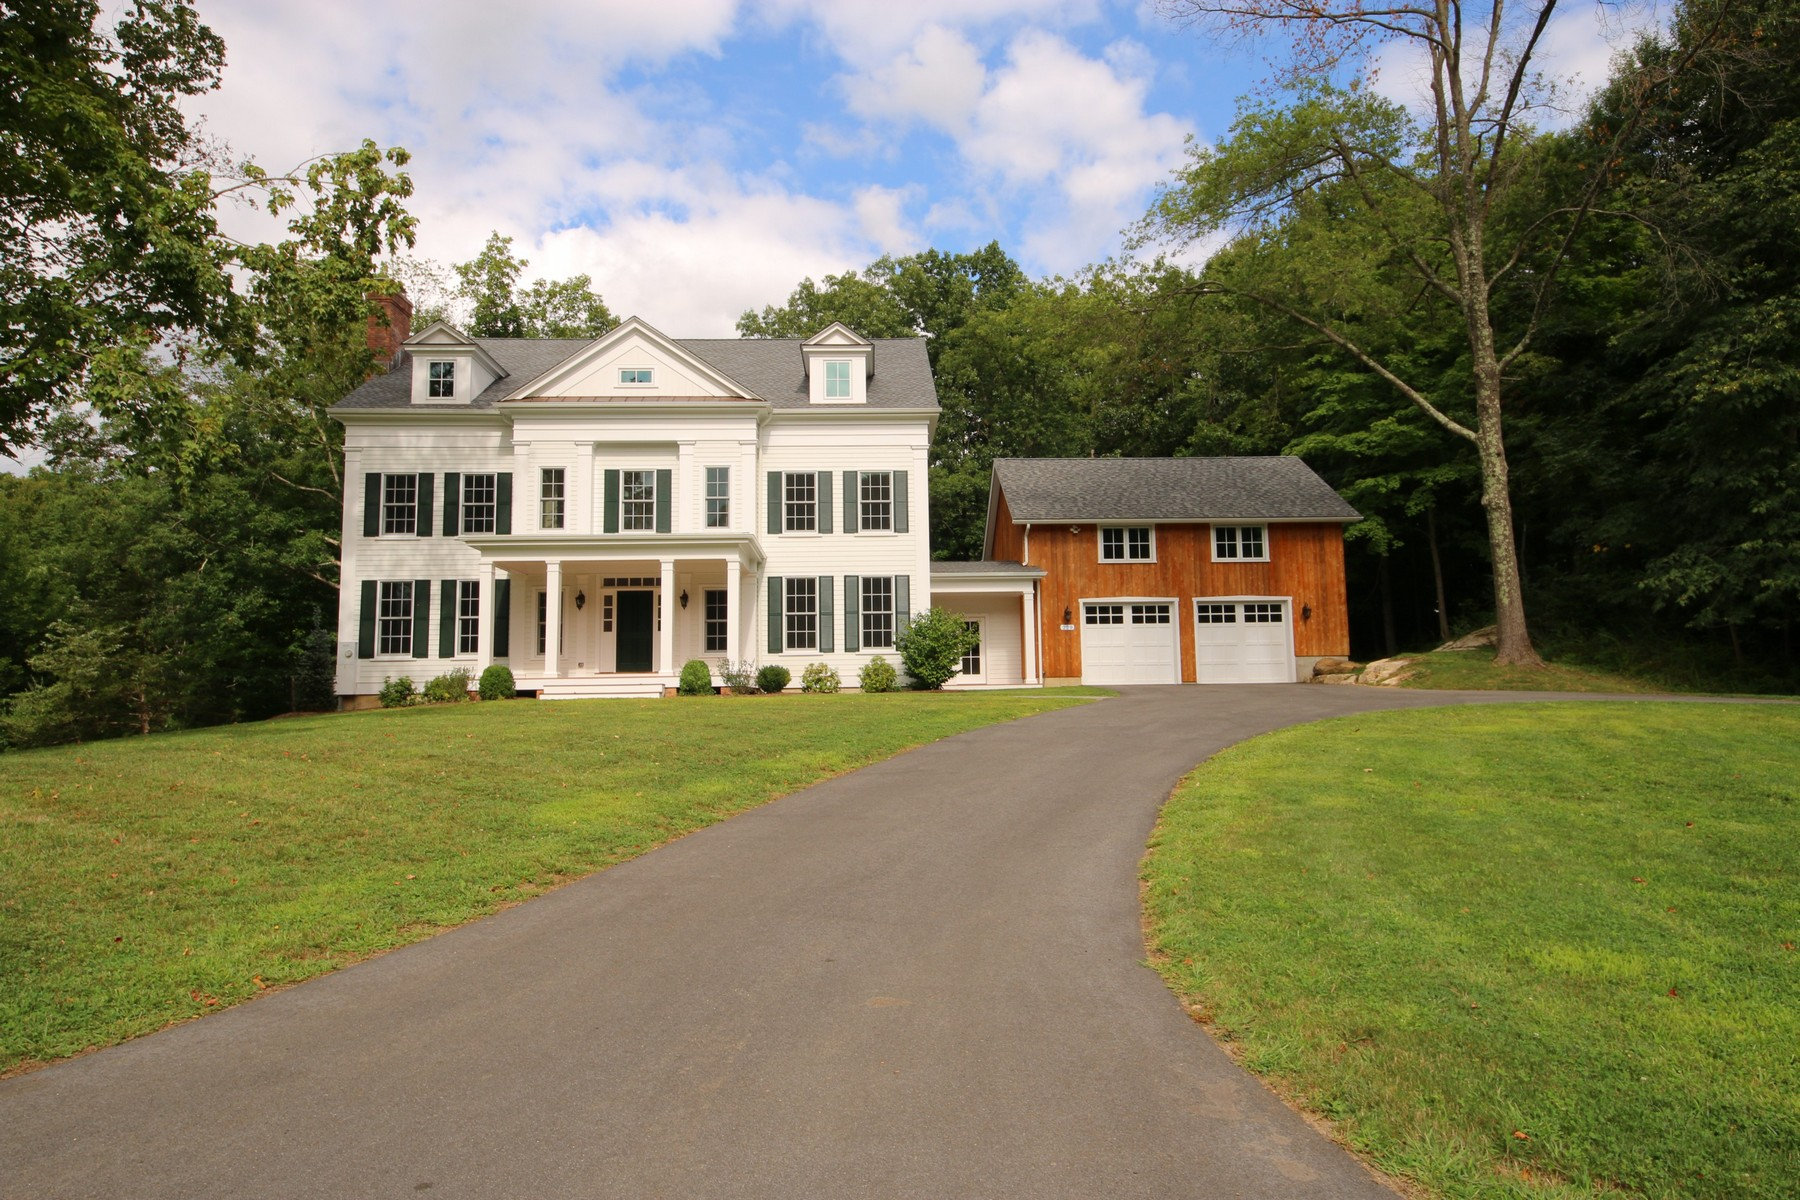 Single Family Home for Sale at Bennetts Meadow New Subdivision 229 Bennetts Farm Road Ridgefield, Connecticut, 06877 United States